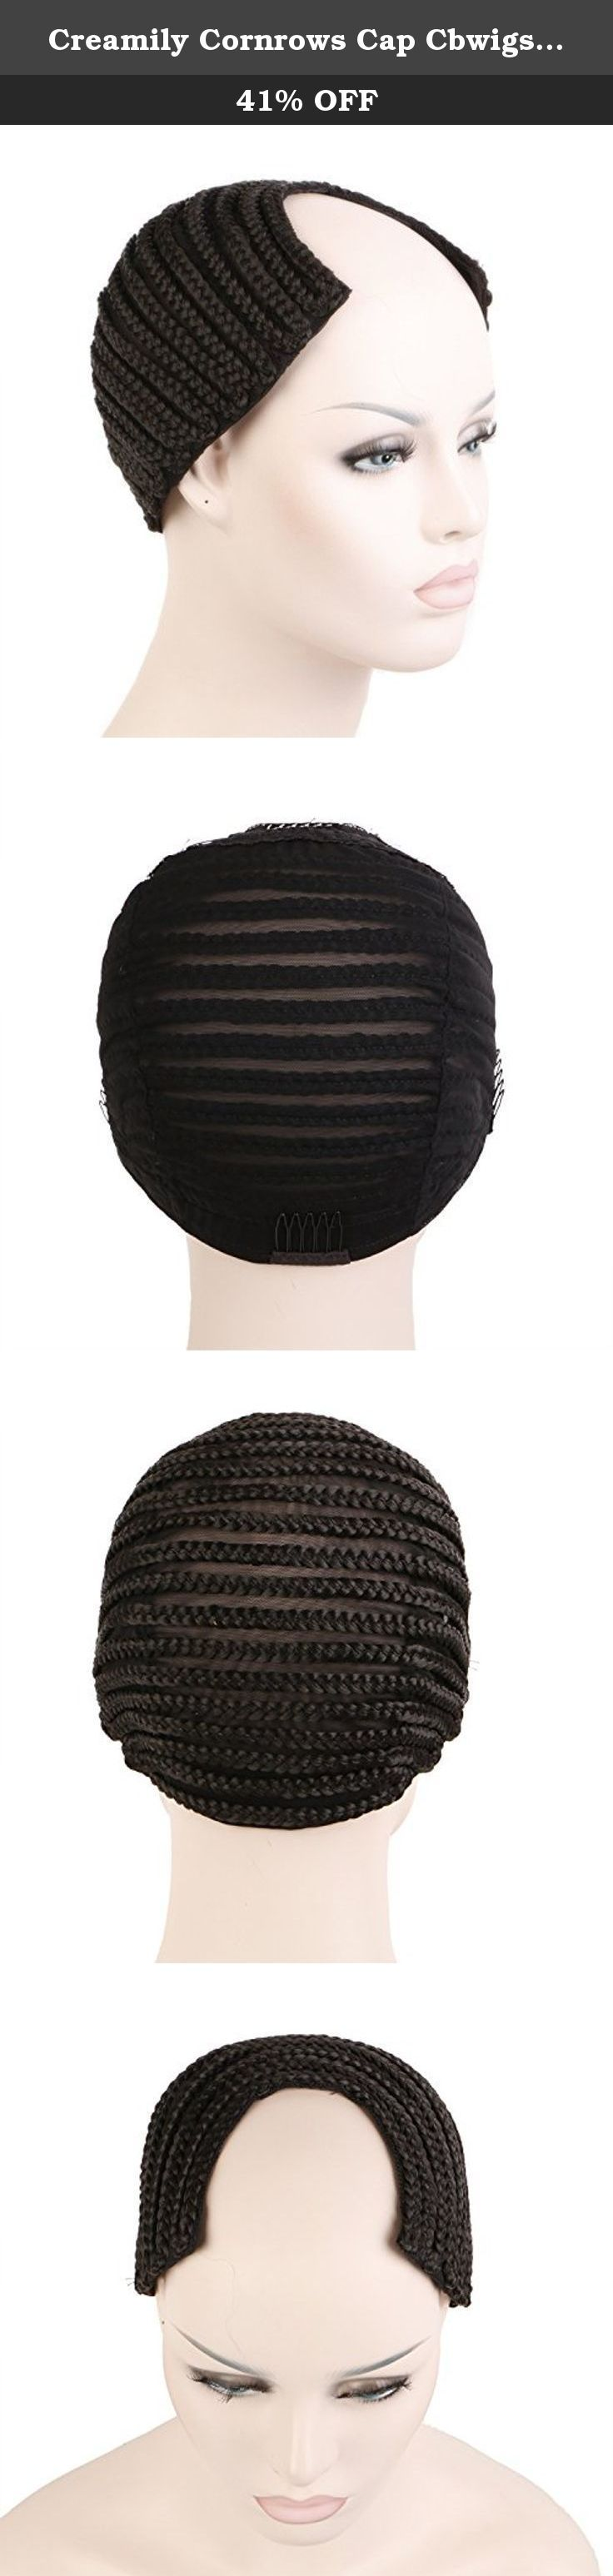 Creamily Cornrows Cap Cbwigs Wave Cap Braided Wig Cap for Easier Sew Hair Weft Designed with Combs Medium Cap (Black U-Part Style). End your weave worries and protect your natural hair. The versatile design allows you to create weave styles and wig units. One size of Cornrow Wig Cap fits all The lace is Elastic Lace, and there are combs under the wig Cap color: Black Cap Style: U part style Package Included: 1 x Cornrows Cap.